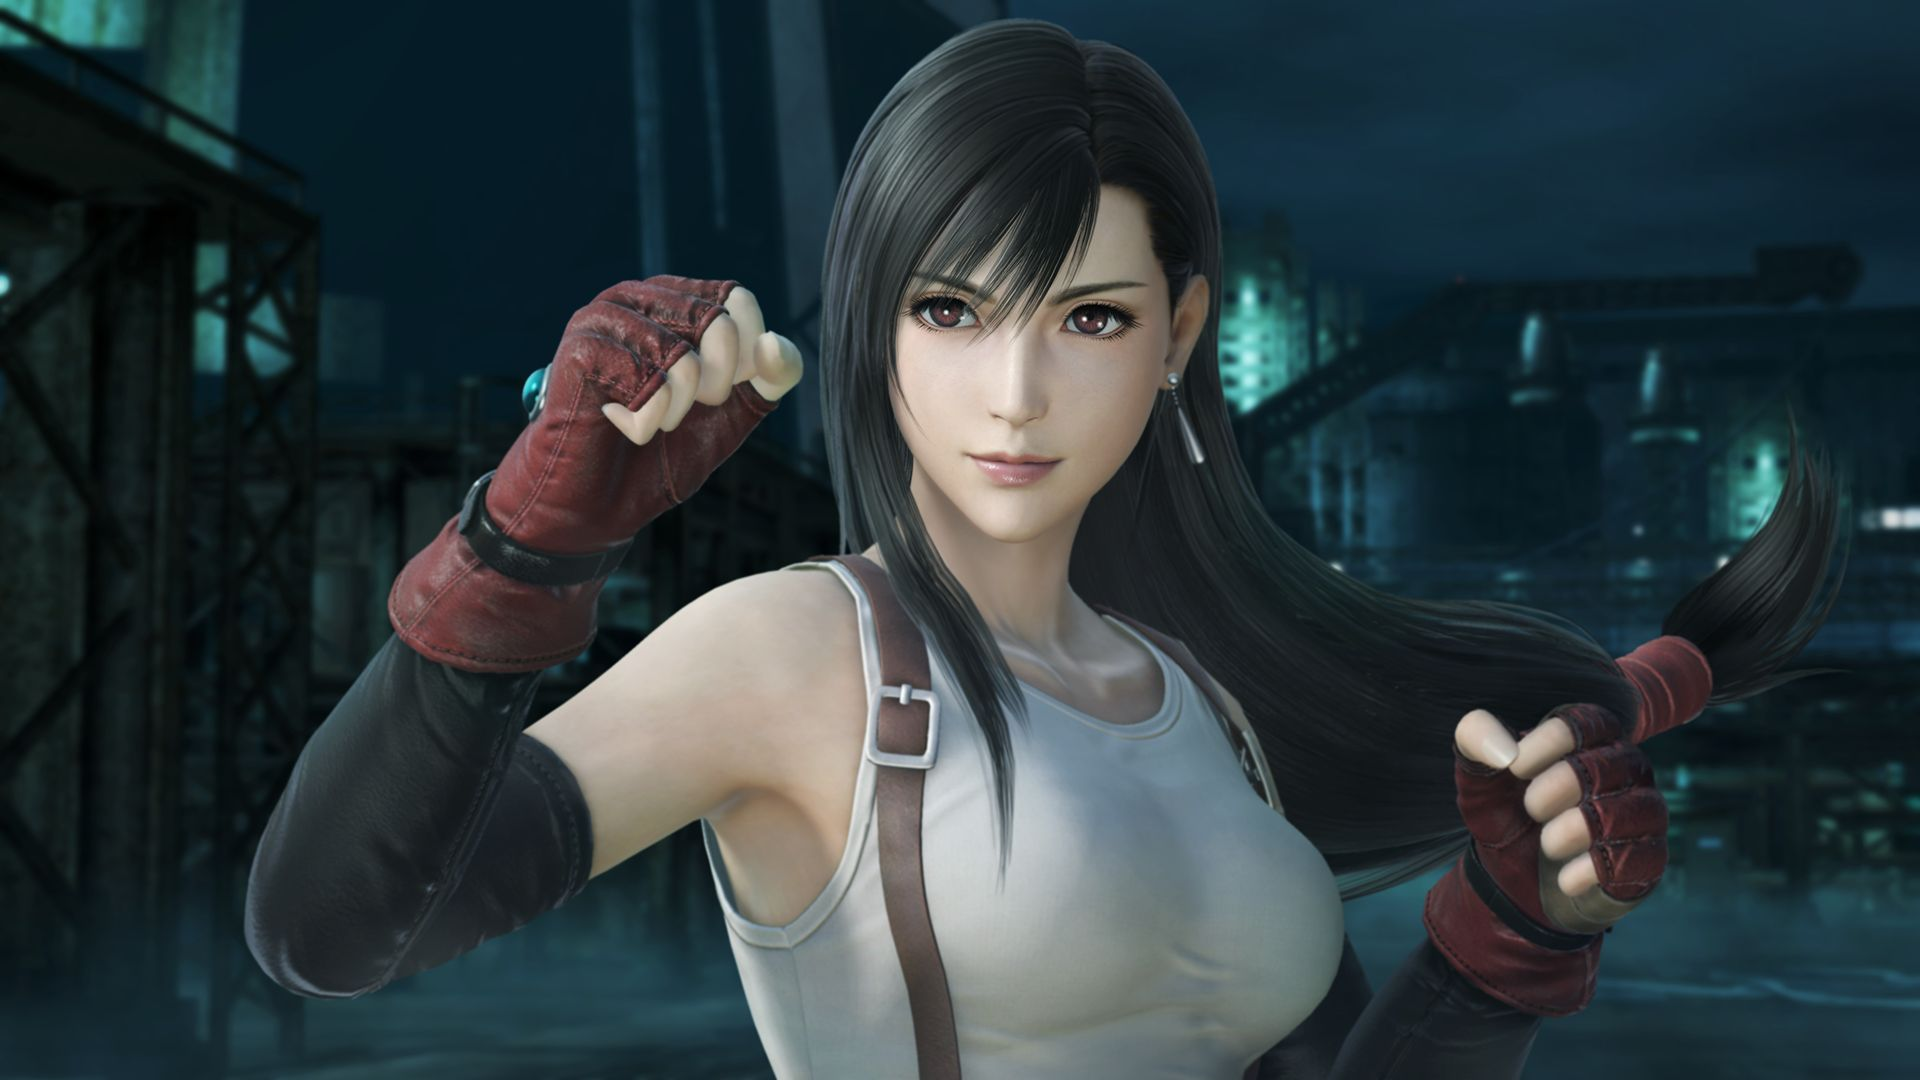 Pictures Of Final Fantasy Vii S Tifa Added To Dissidia Nt